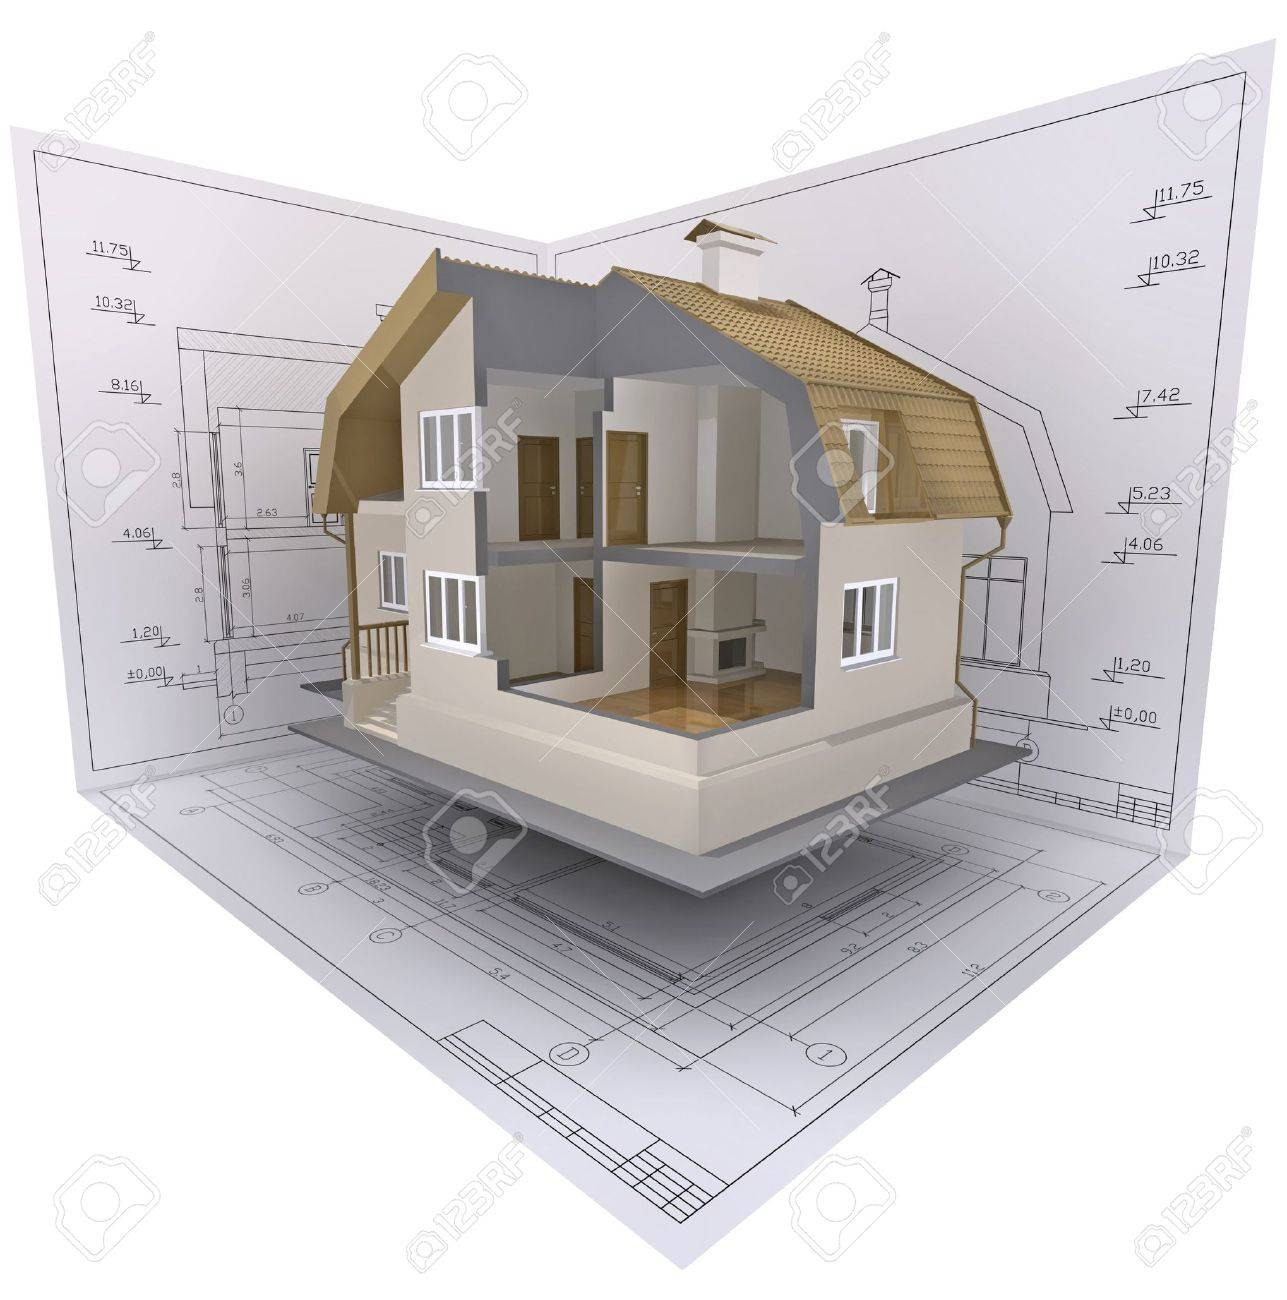 3D isometric view the cut residential house on architect�s drawing. Stock Photo - 6154990